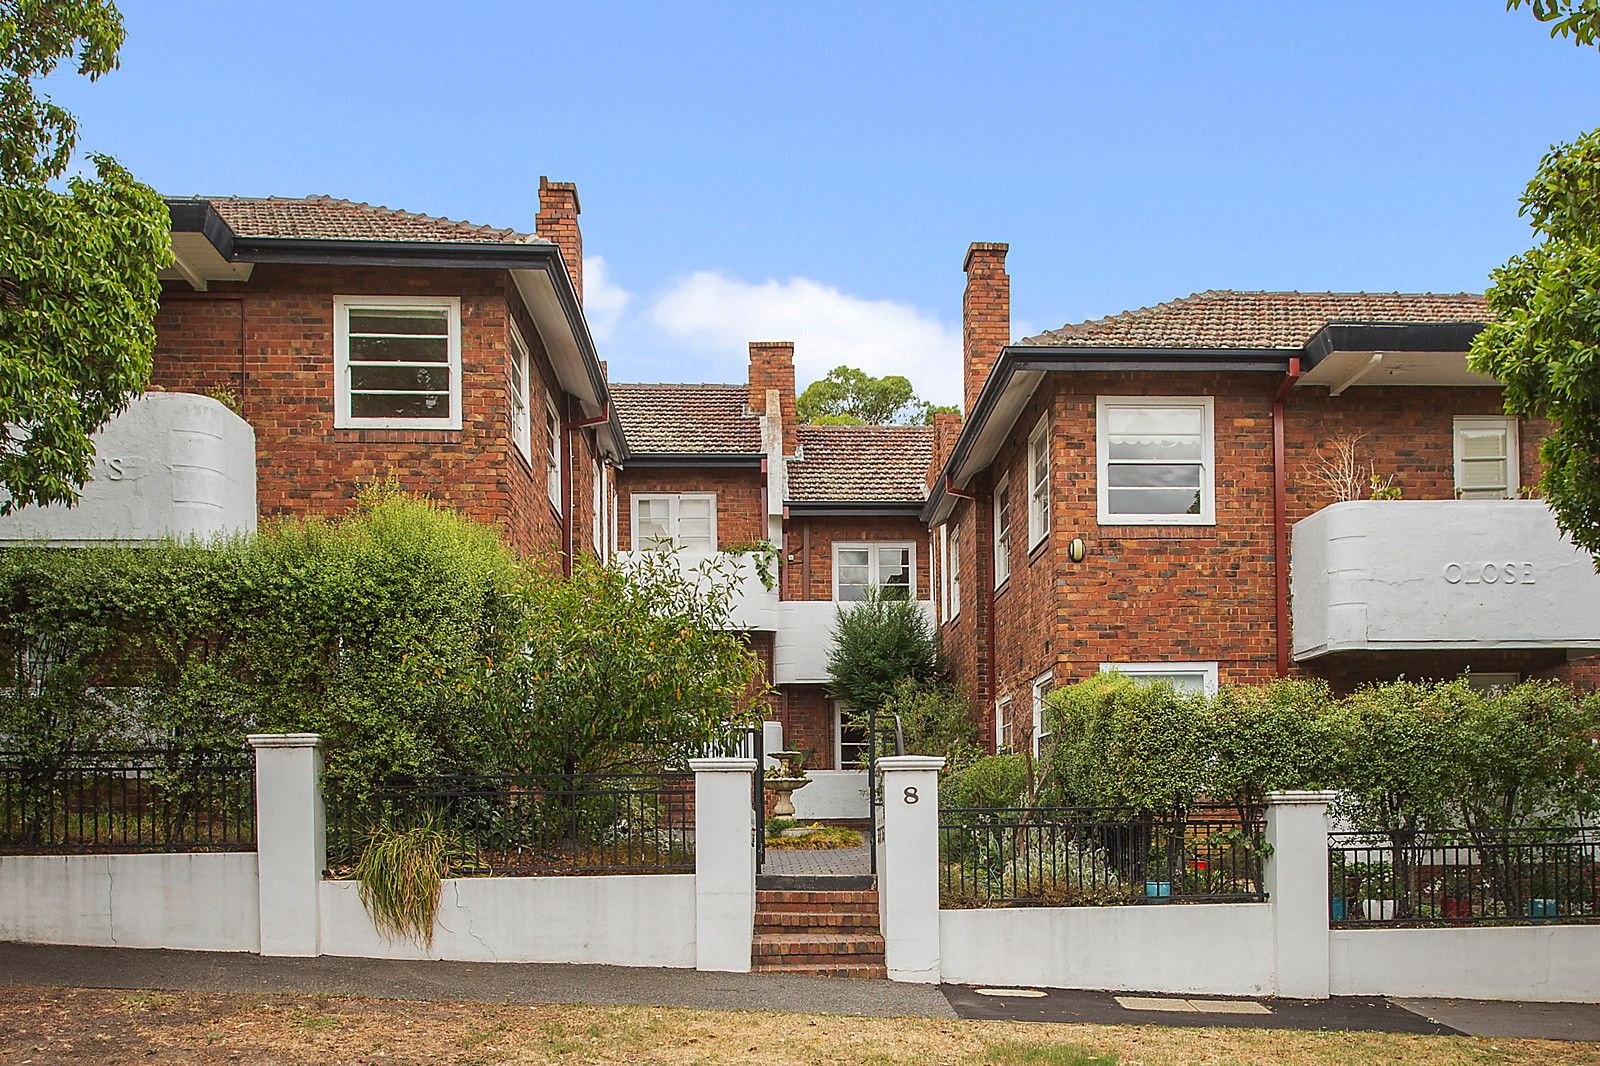 8/8 St Georges Grove, Parkville VIC 3052, Image 0